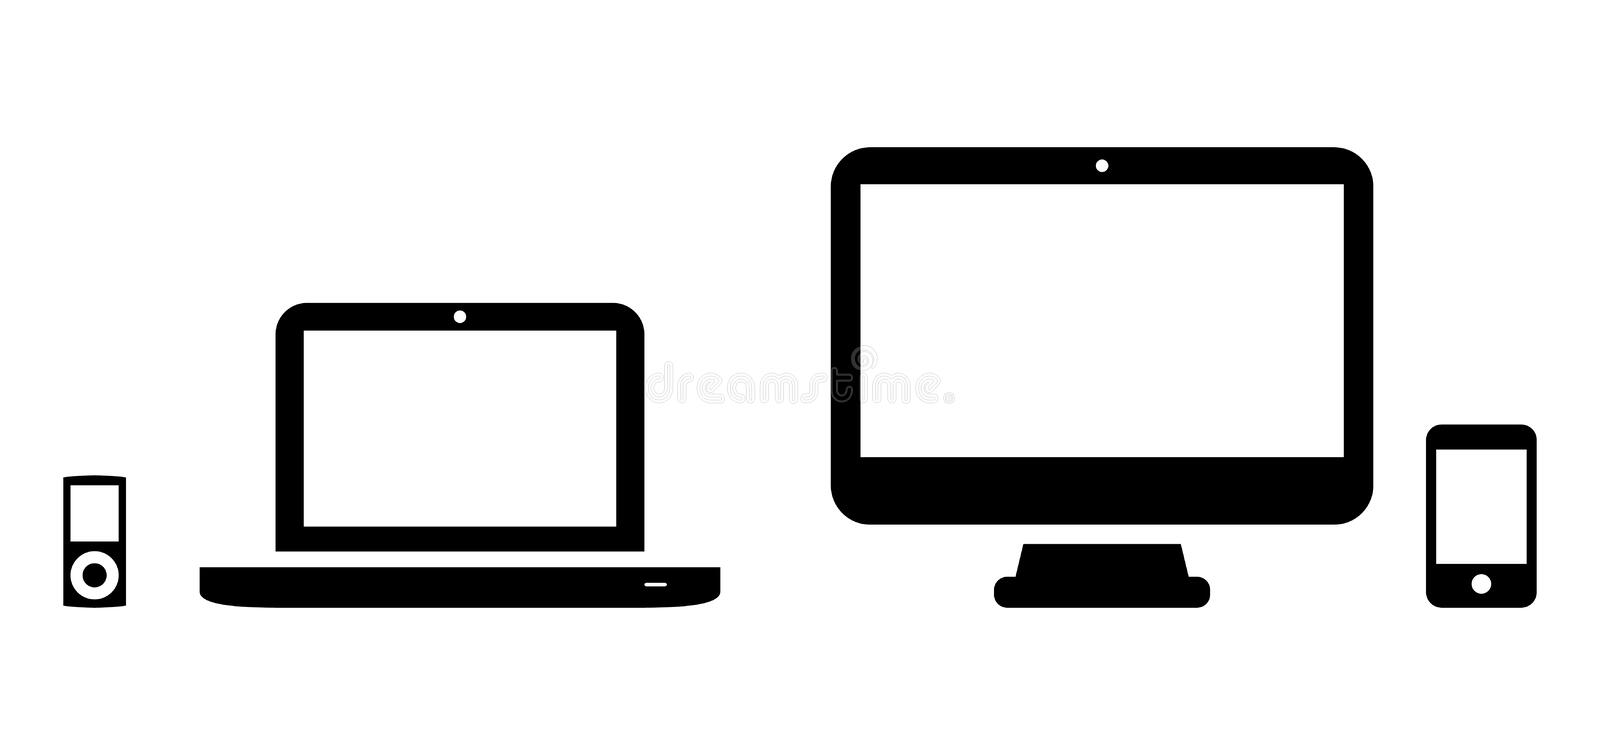 Computers and players. Vector icons of MP3 player, laptop, desktop and phone vector illustration